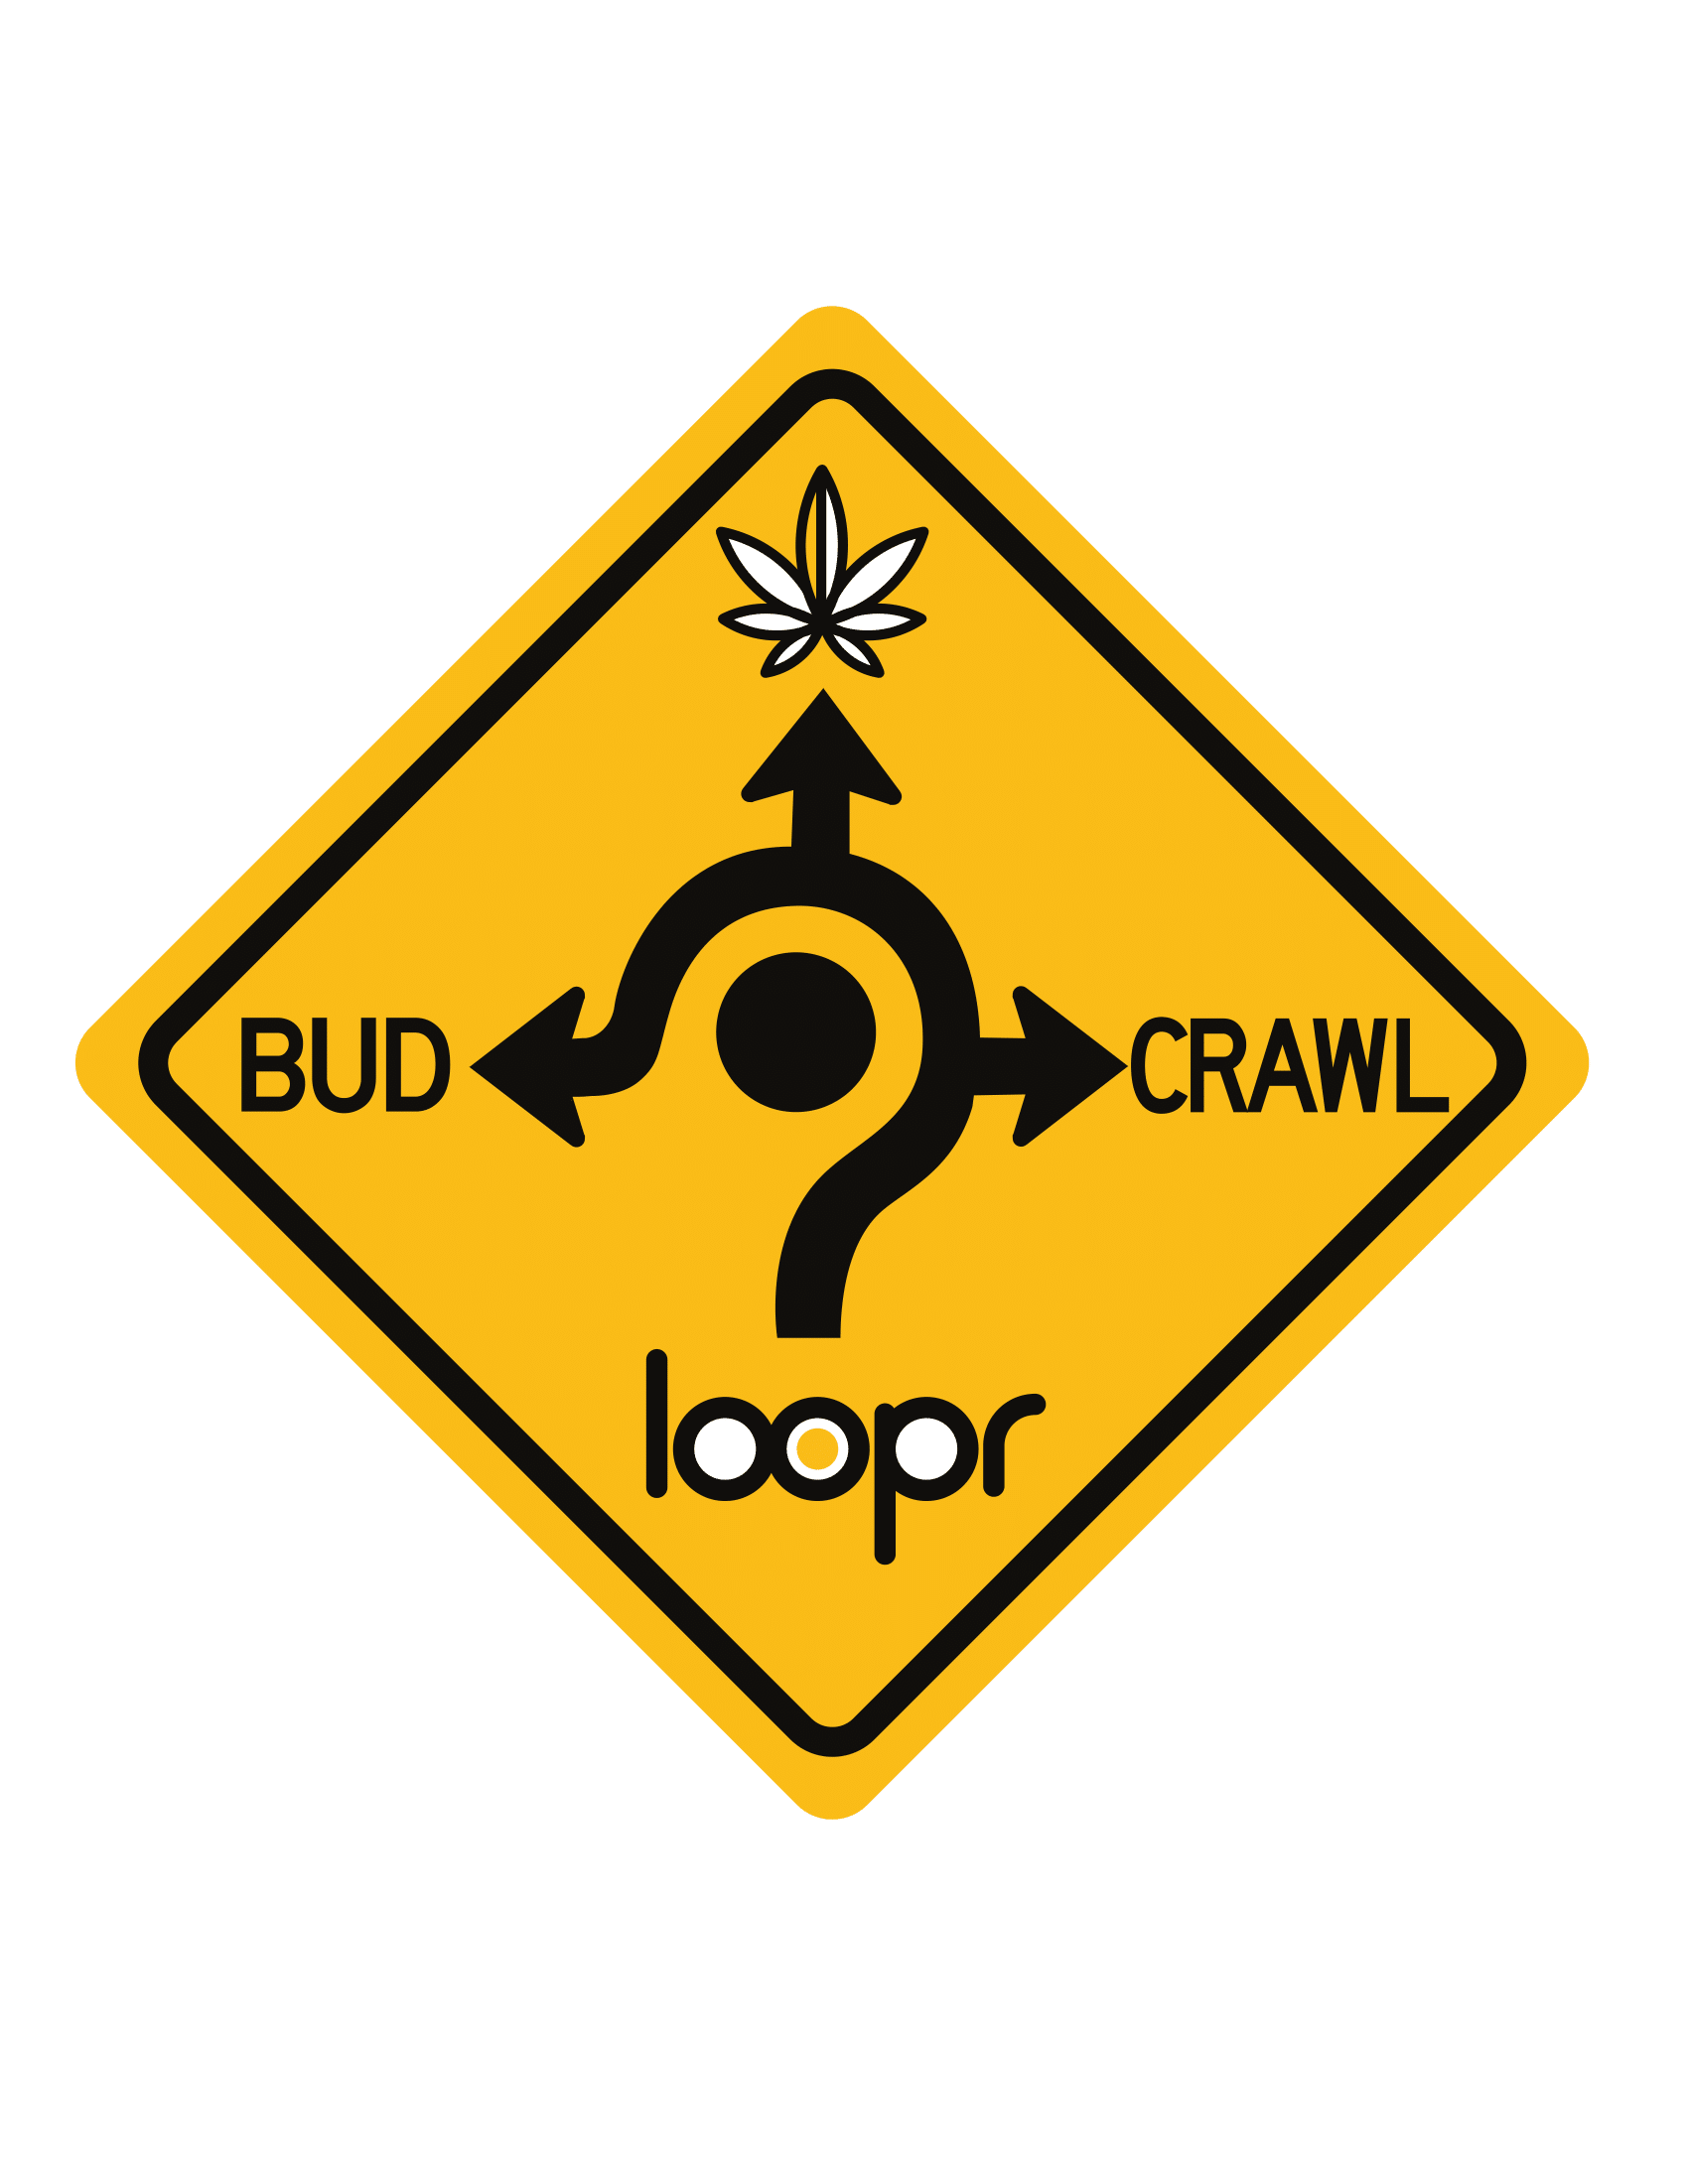 Loopr 20cannabis 20crawl 203c final 1